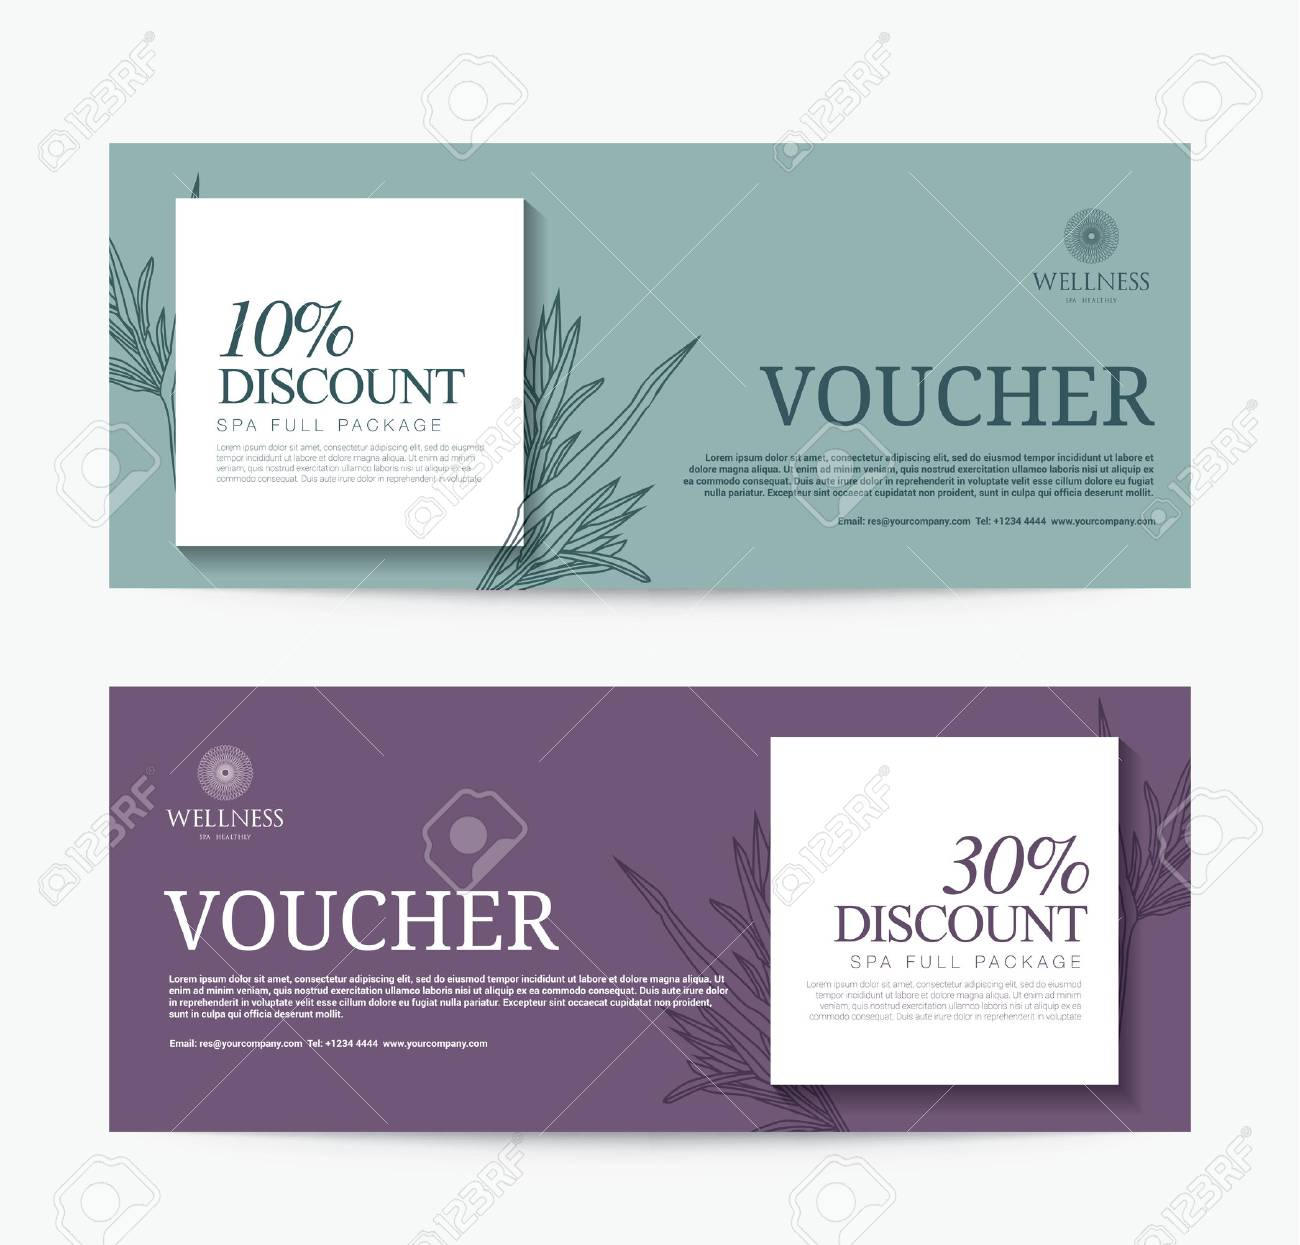 Gift Voucher Template For Spa, Hotel Resort, Modern Design ...